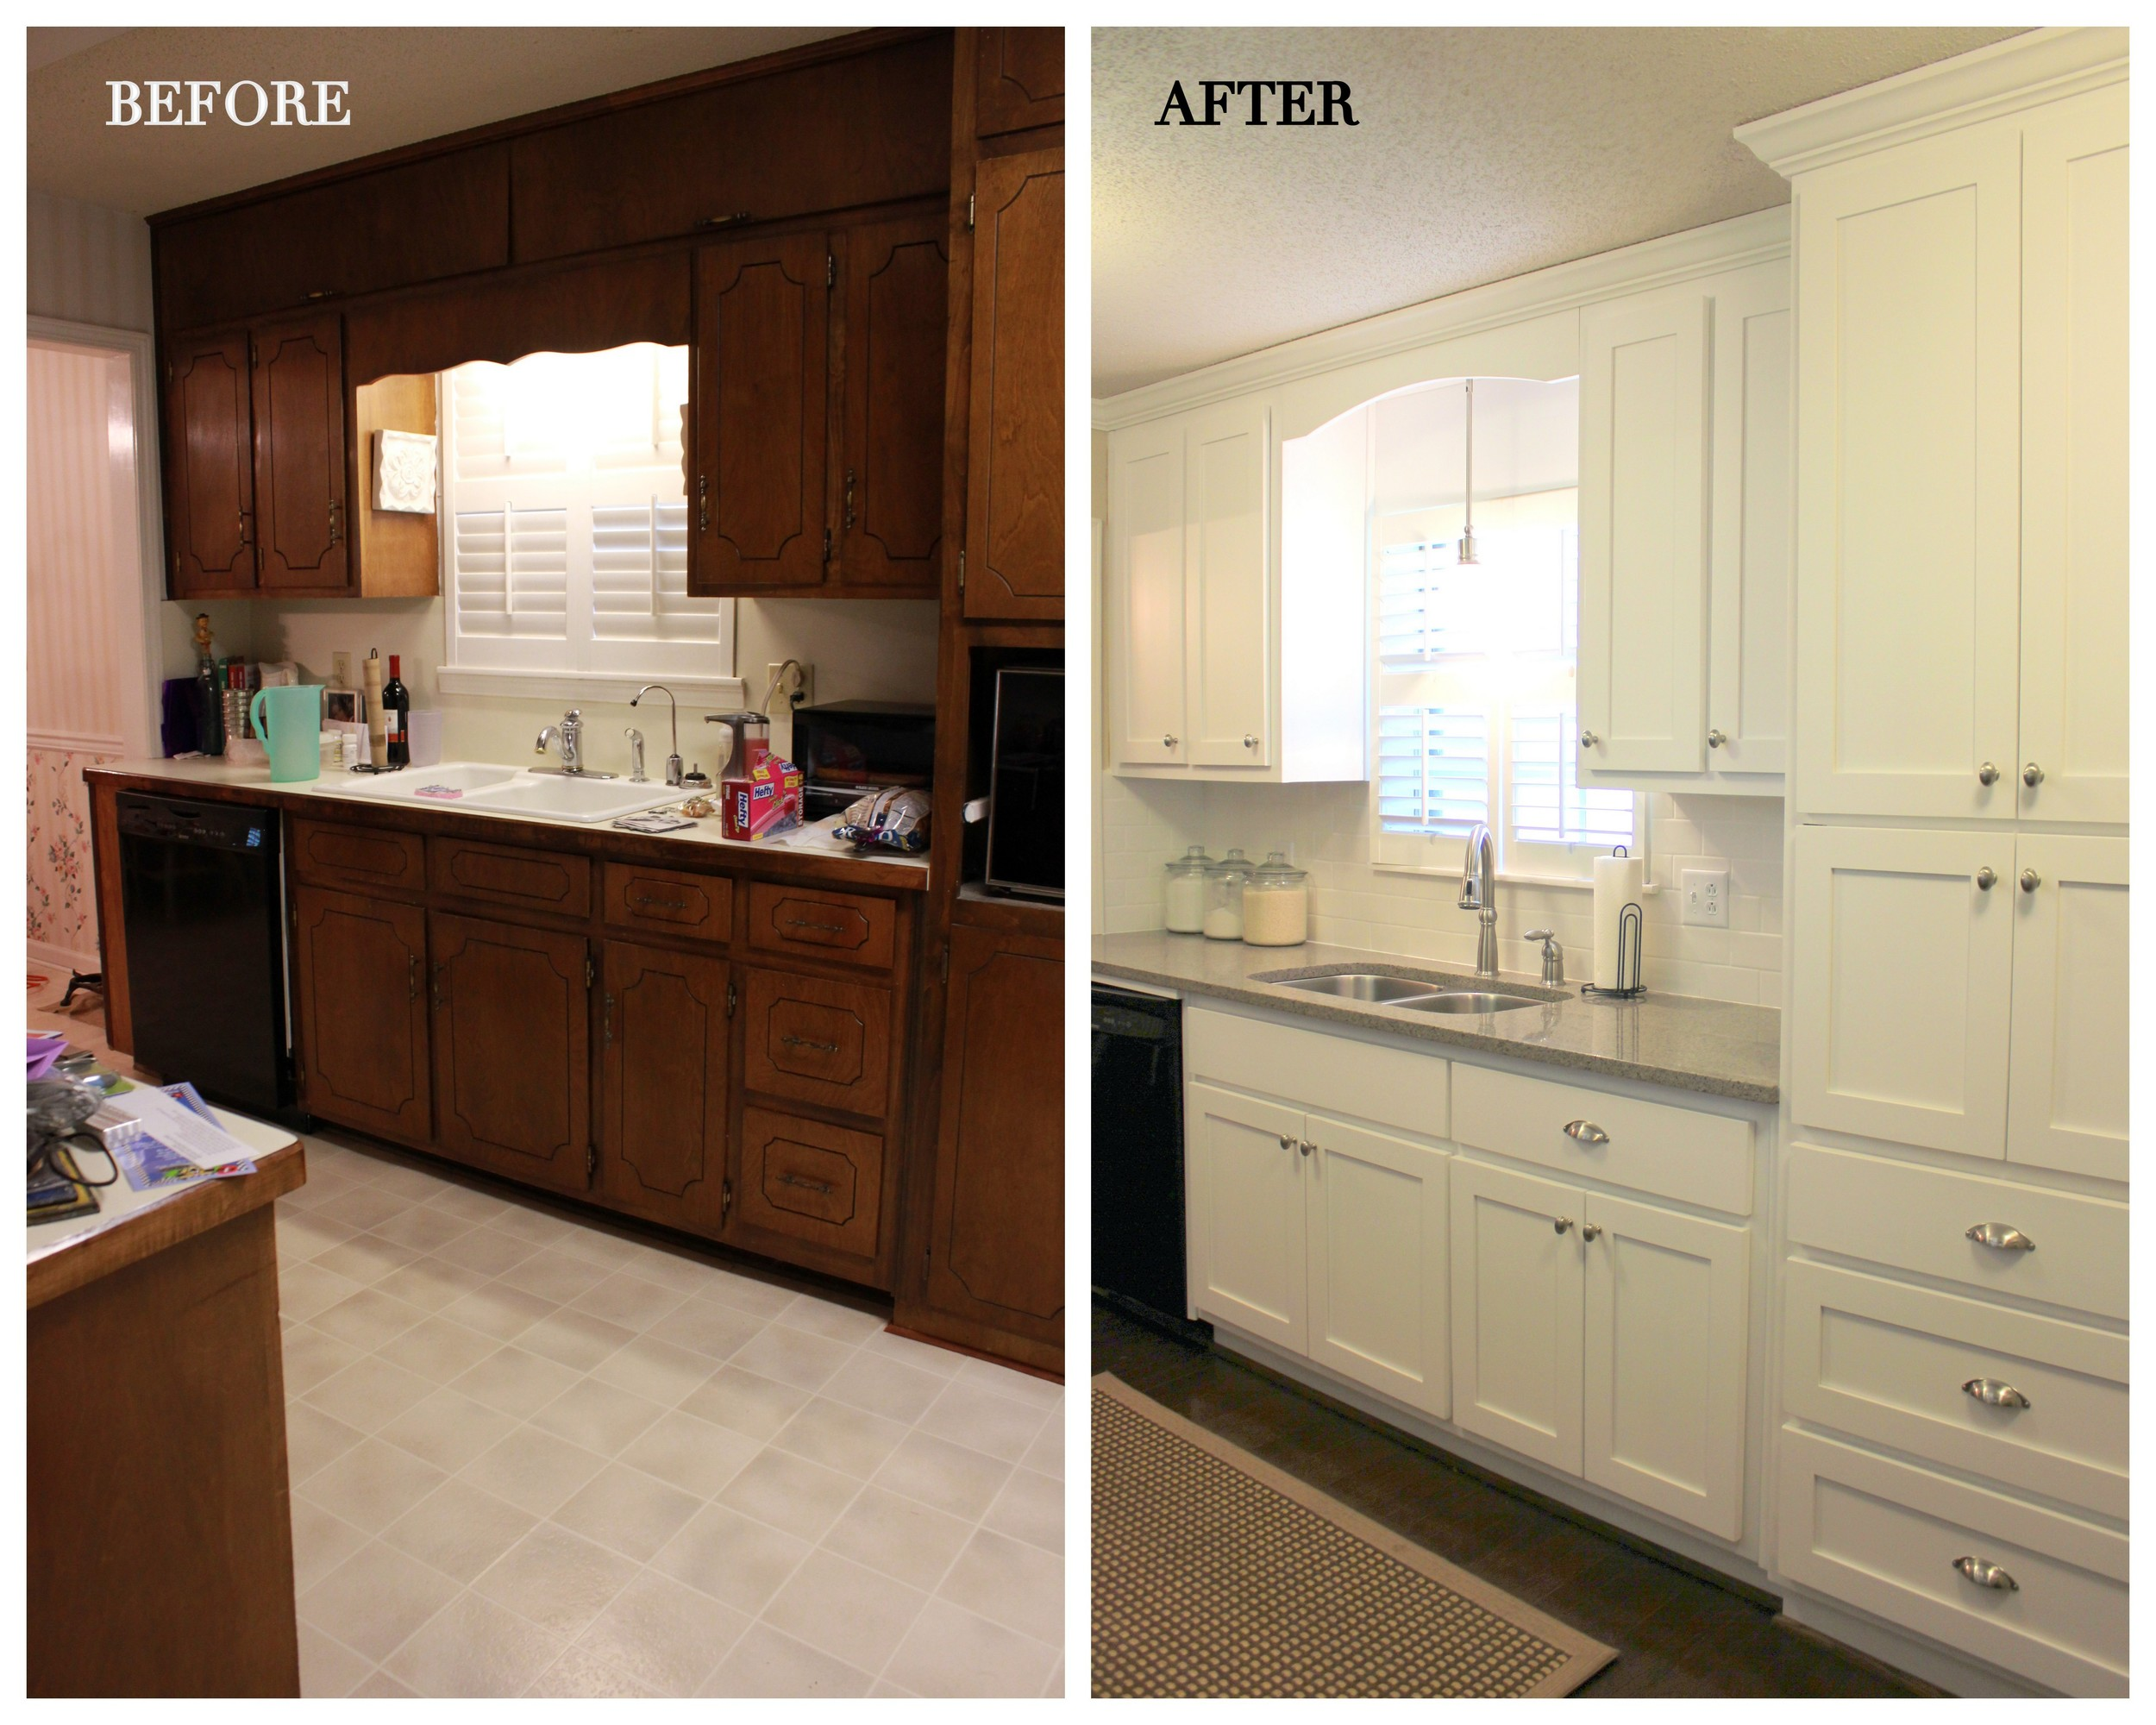 70s kitchen before and after 3a design studio